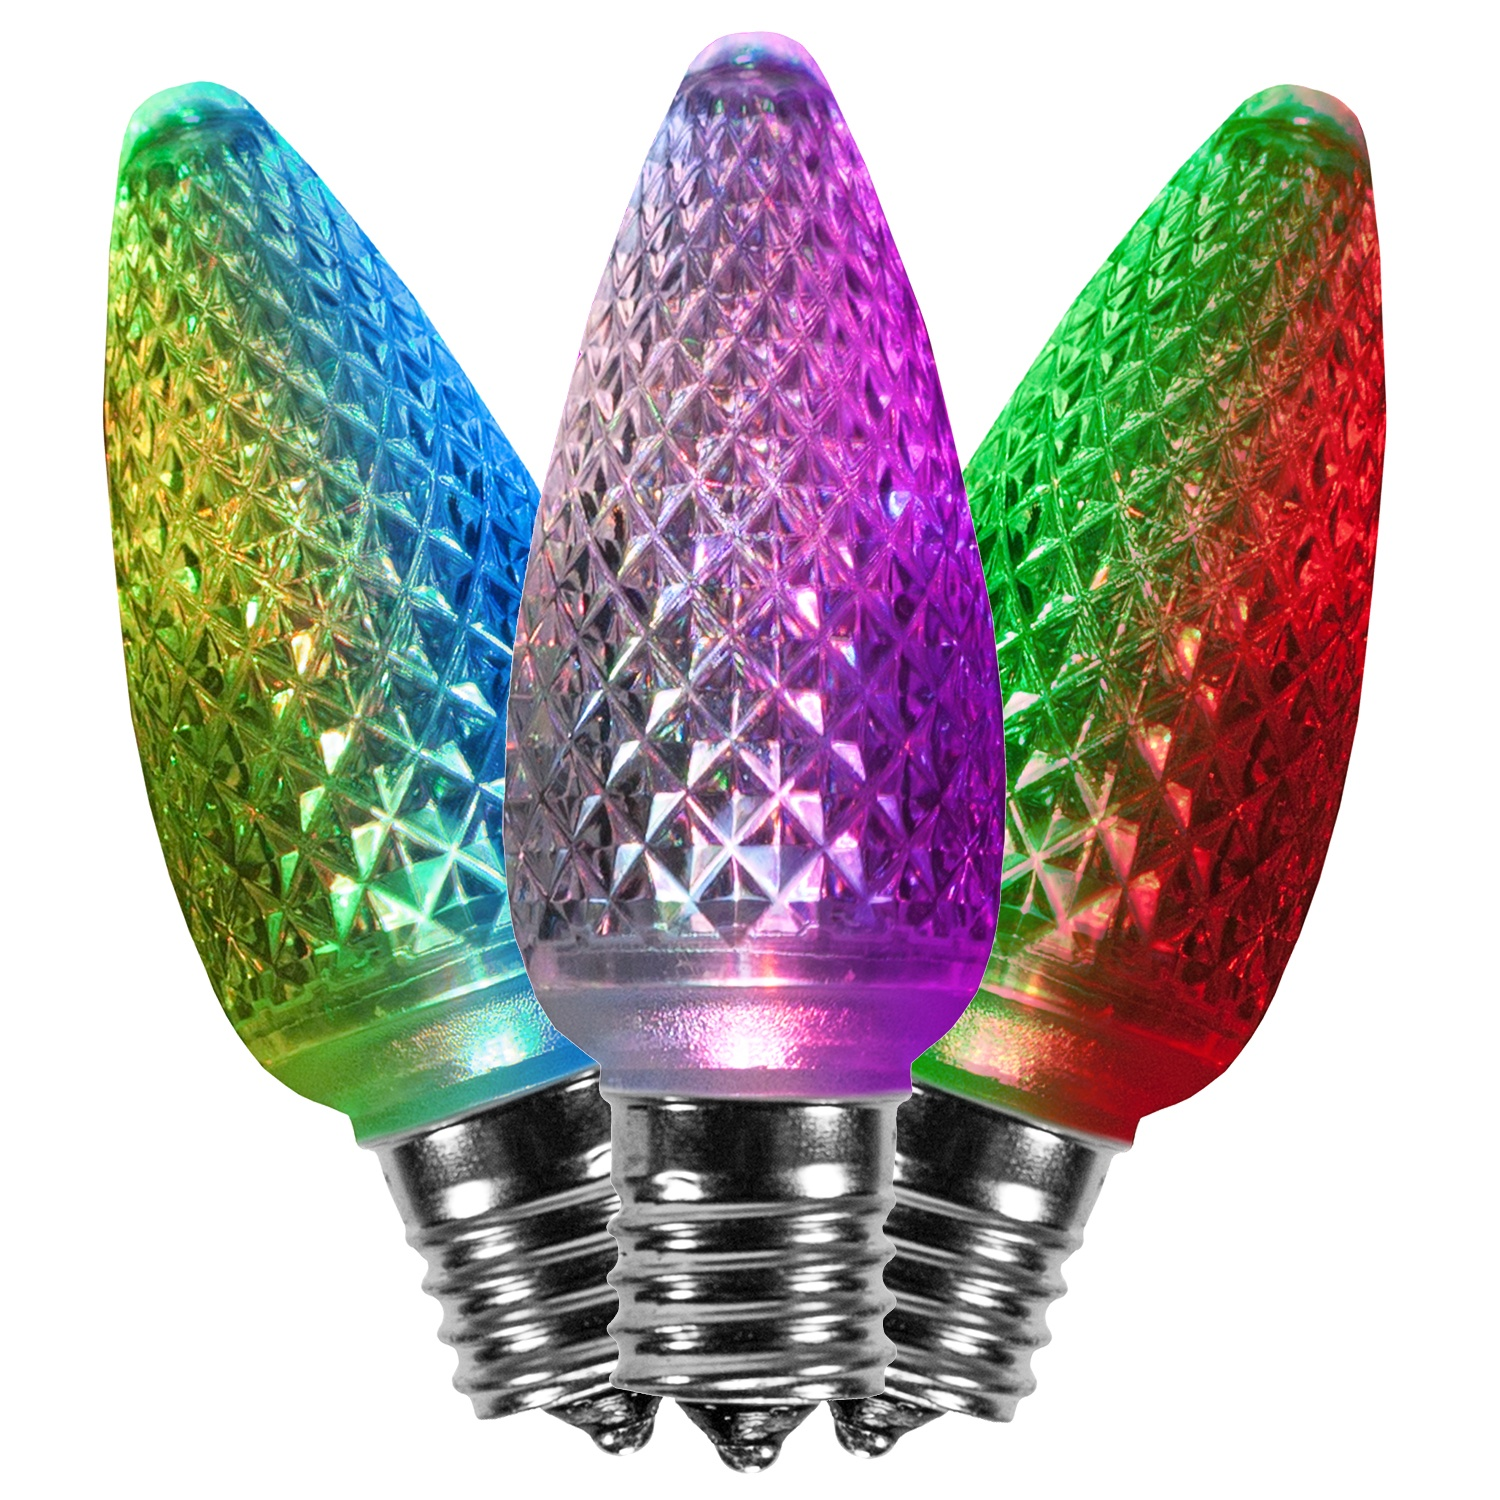 Christmas Tree Lights Replacement Bulbs